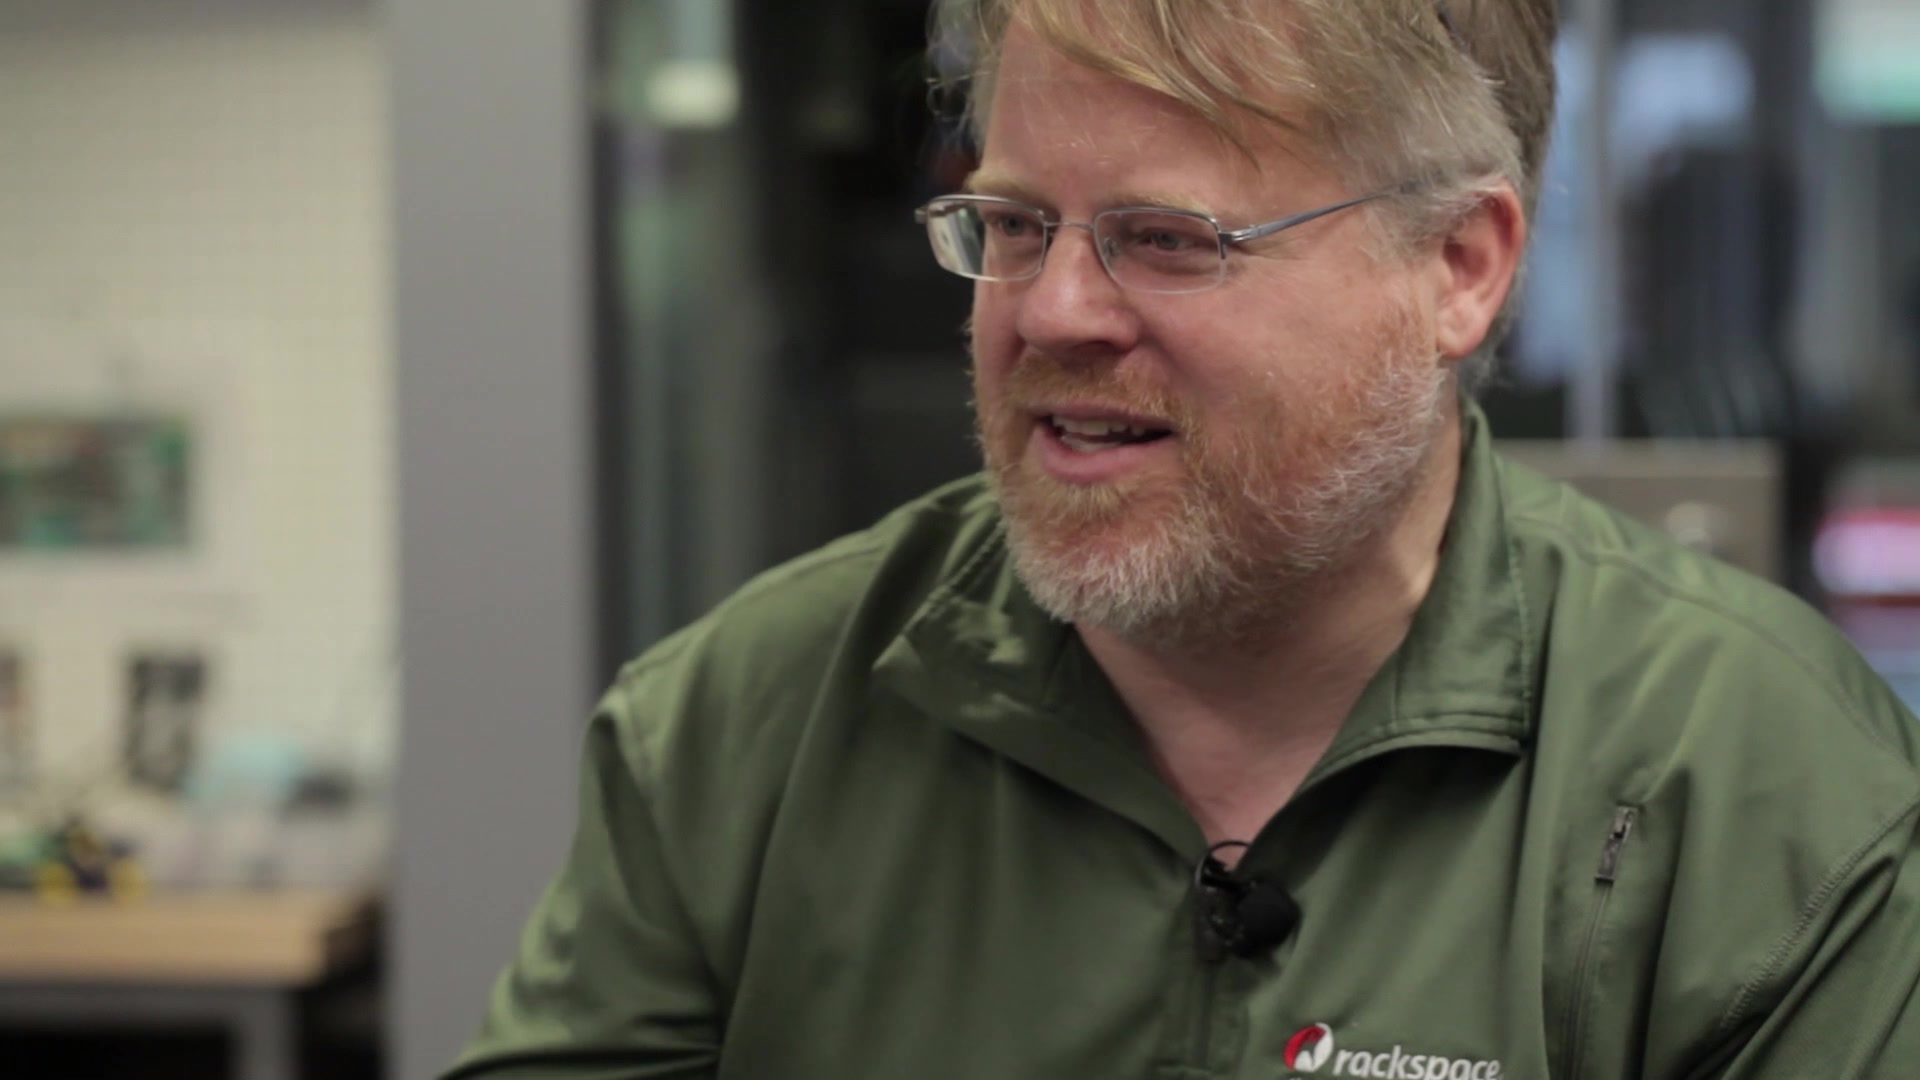 Robert Scoble Thinks Ahead Tech Trends In 2014 | Keen On...